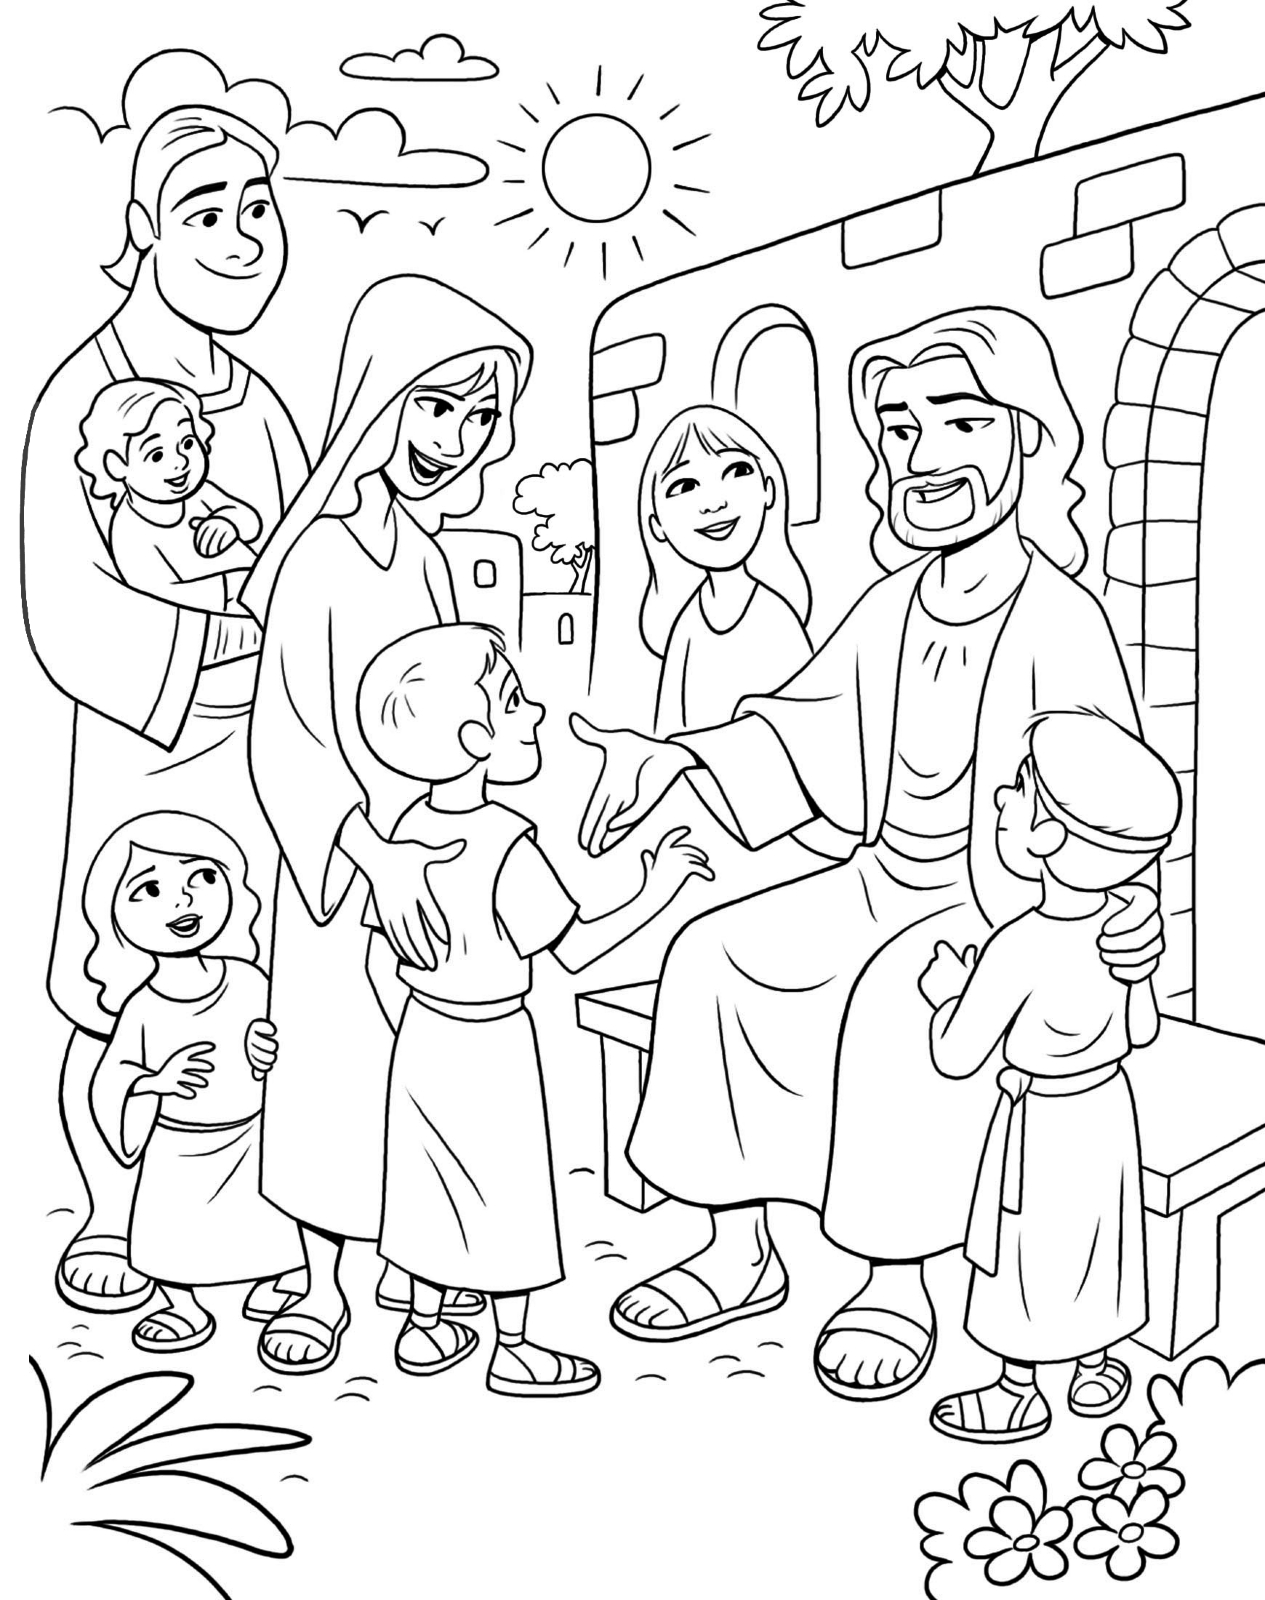 Colorful Jesus Coloring Pages Lds Composition - Ways To Use Coloring ...